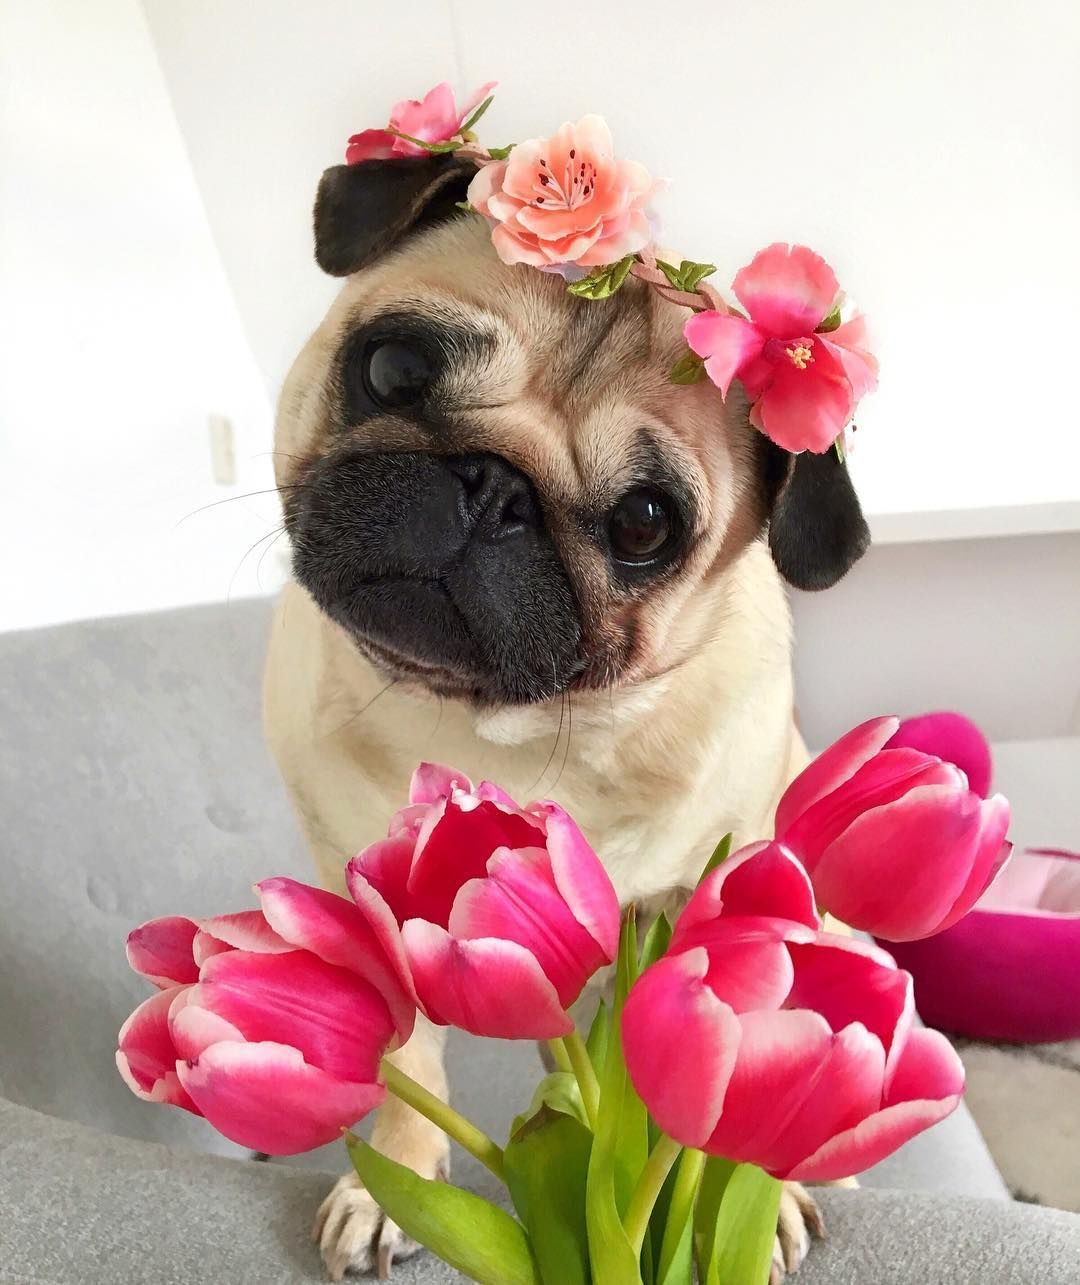 Pin By Wendy Cabb On I Love Cats And Dogs Cute Pugs Cute Dogs